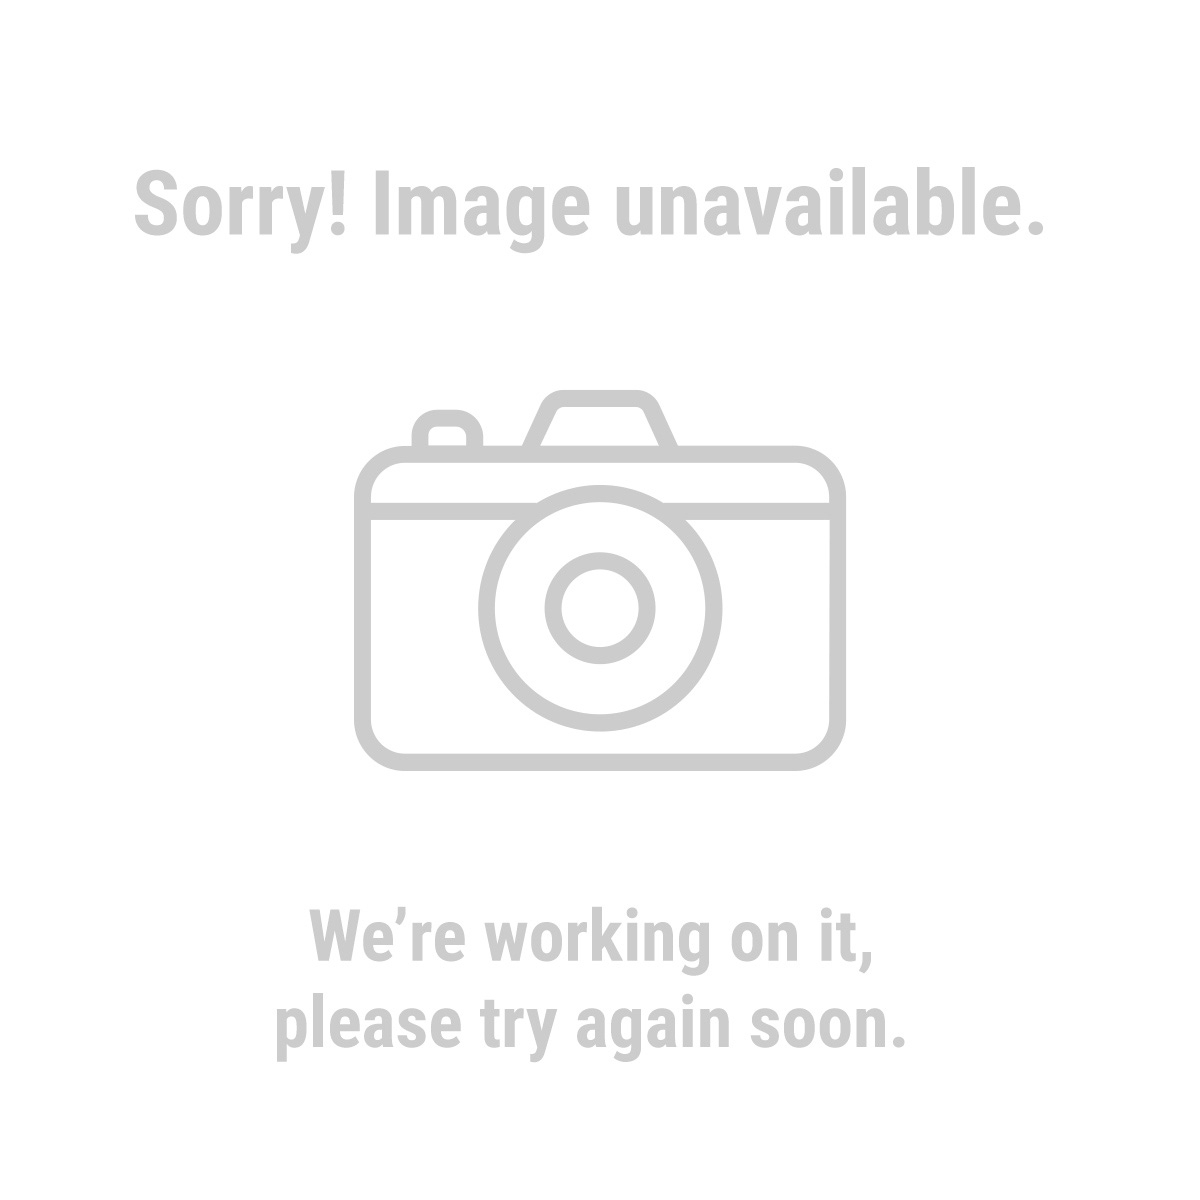 Chain Saw Sharpener, Electric